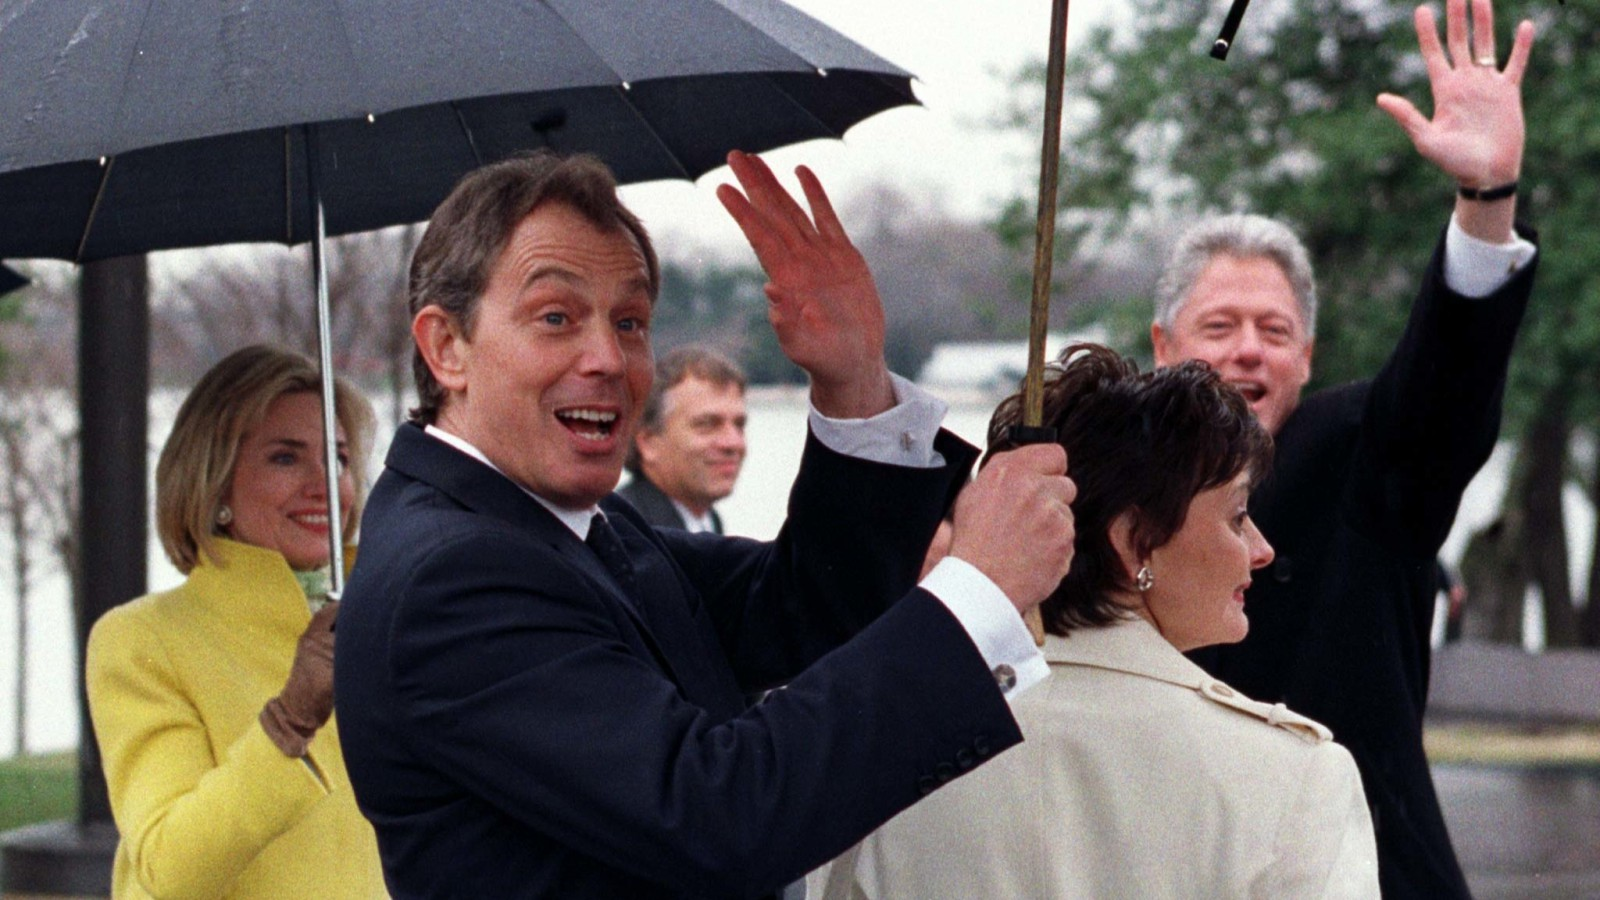 Tony Blair with the Clintons in 1998.